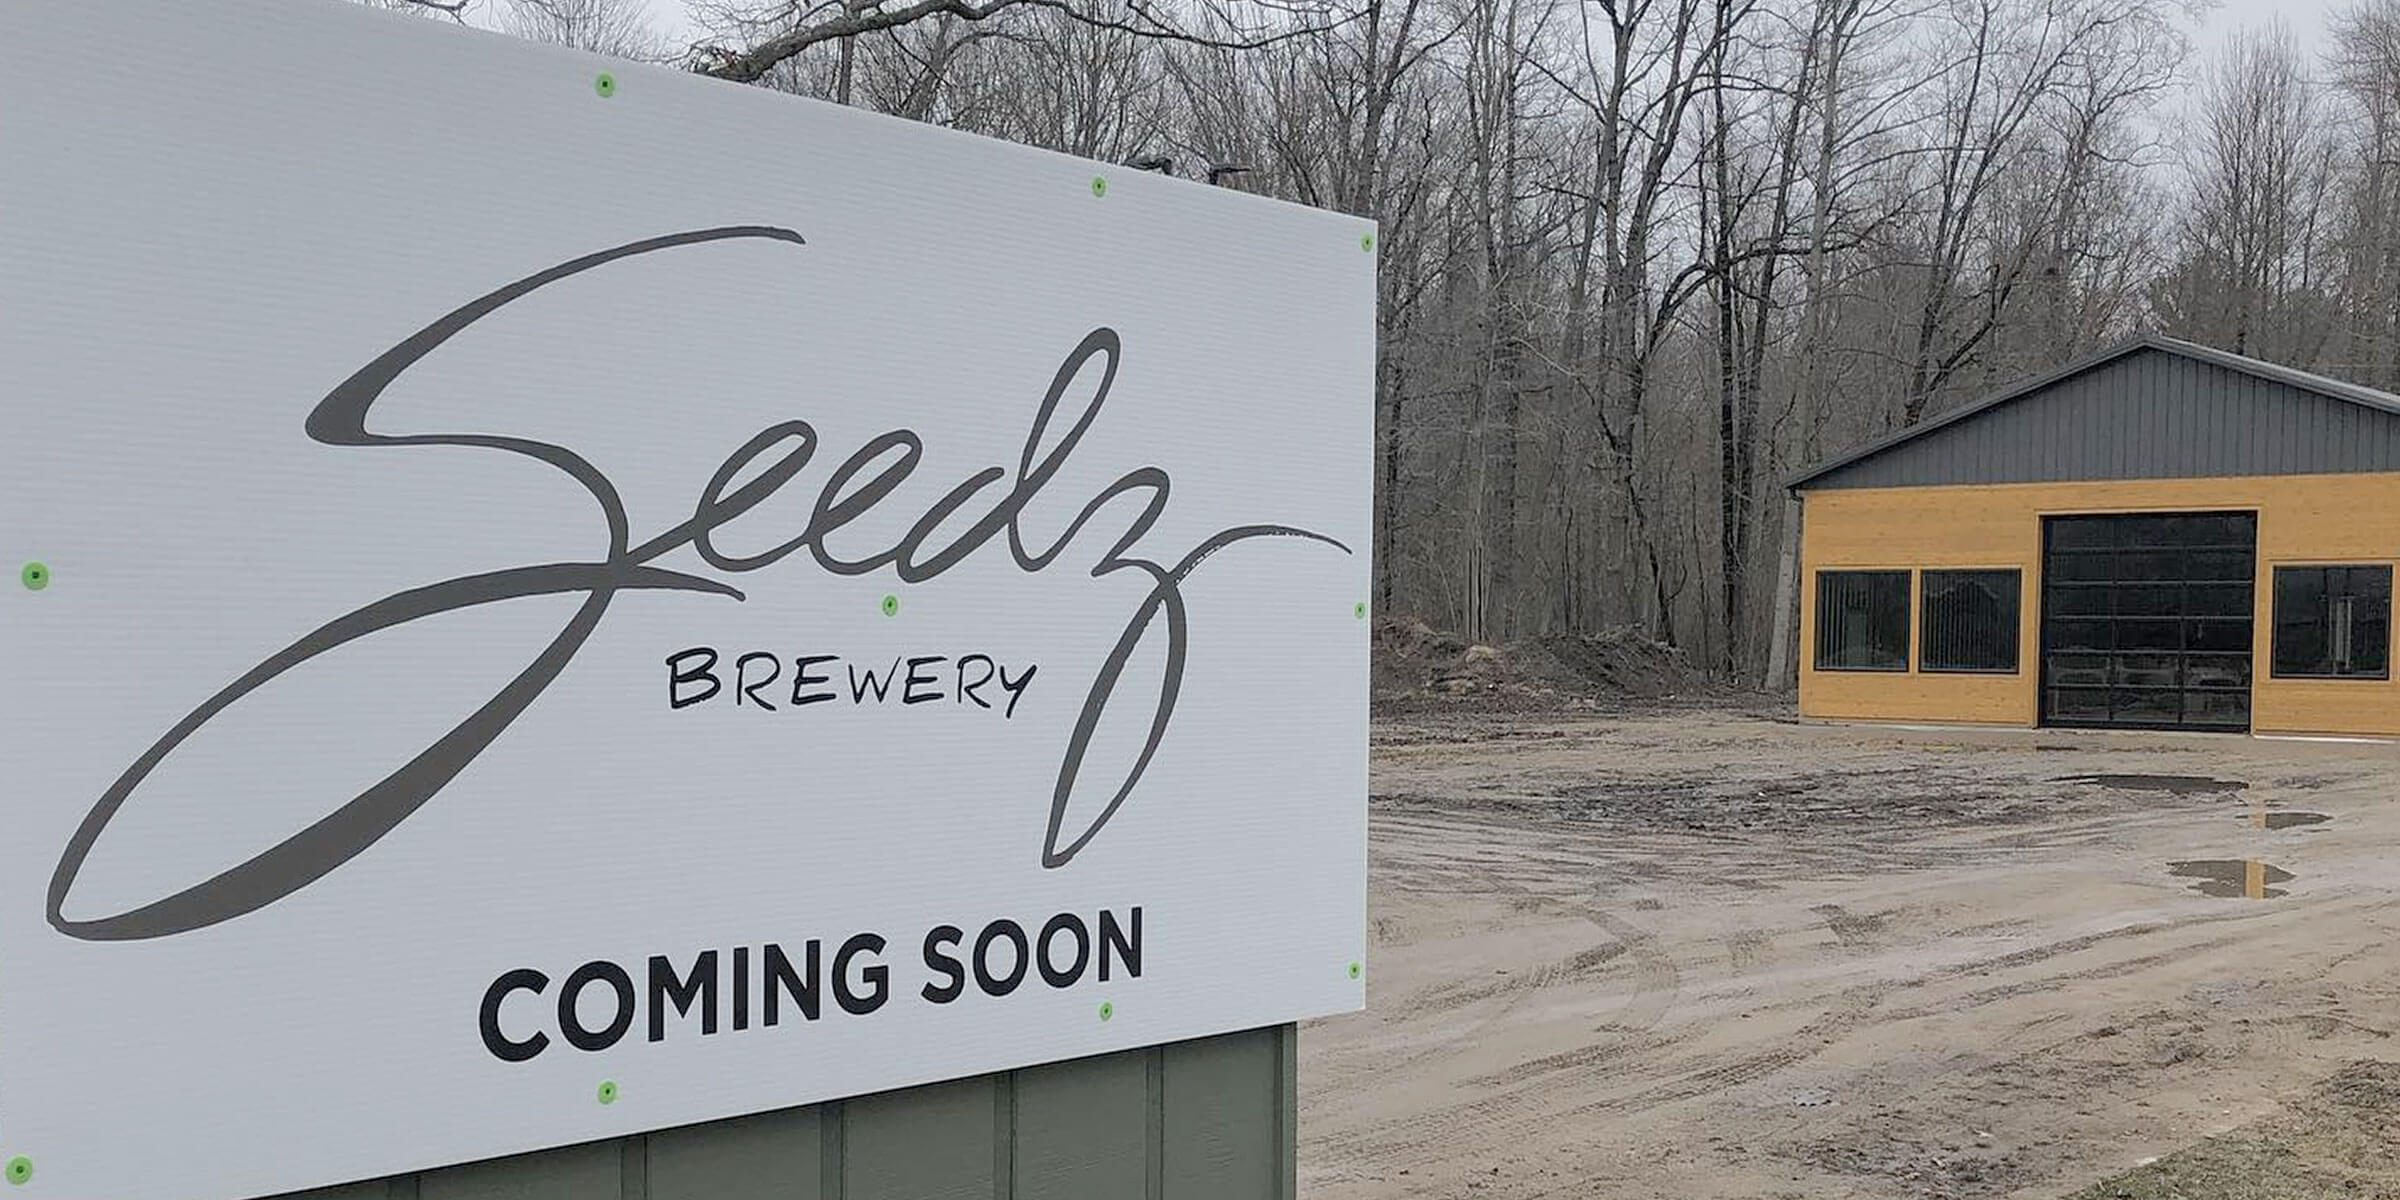 Temporary signage posted outside Seedz Brewery while under development in Union Pier, Michigan